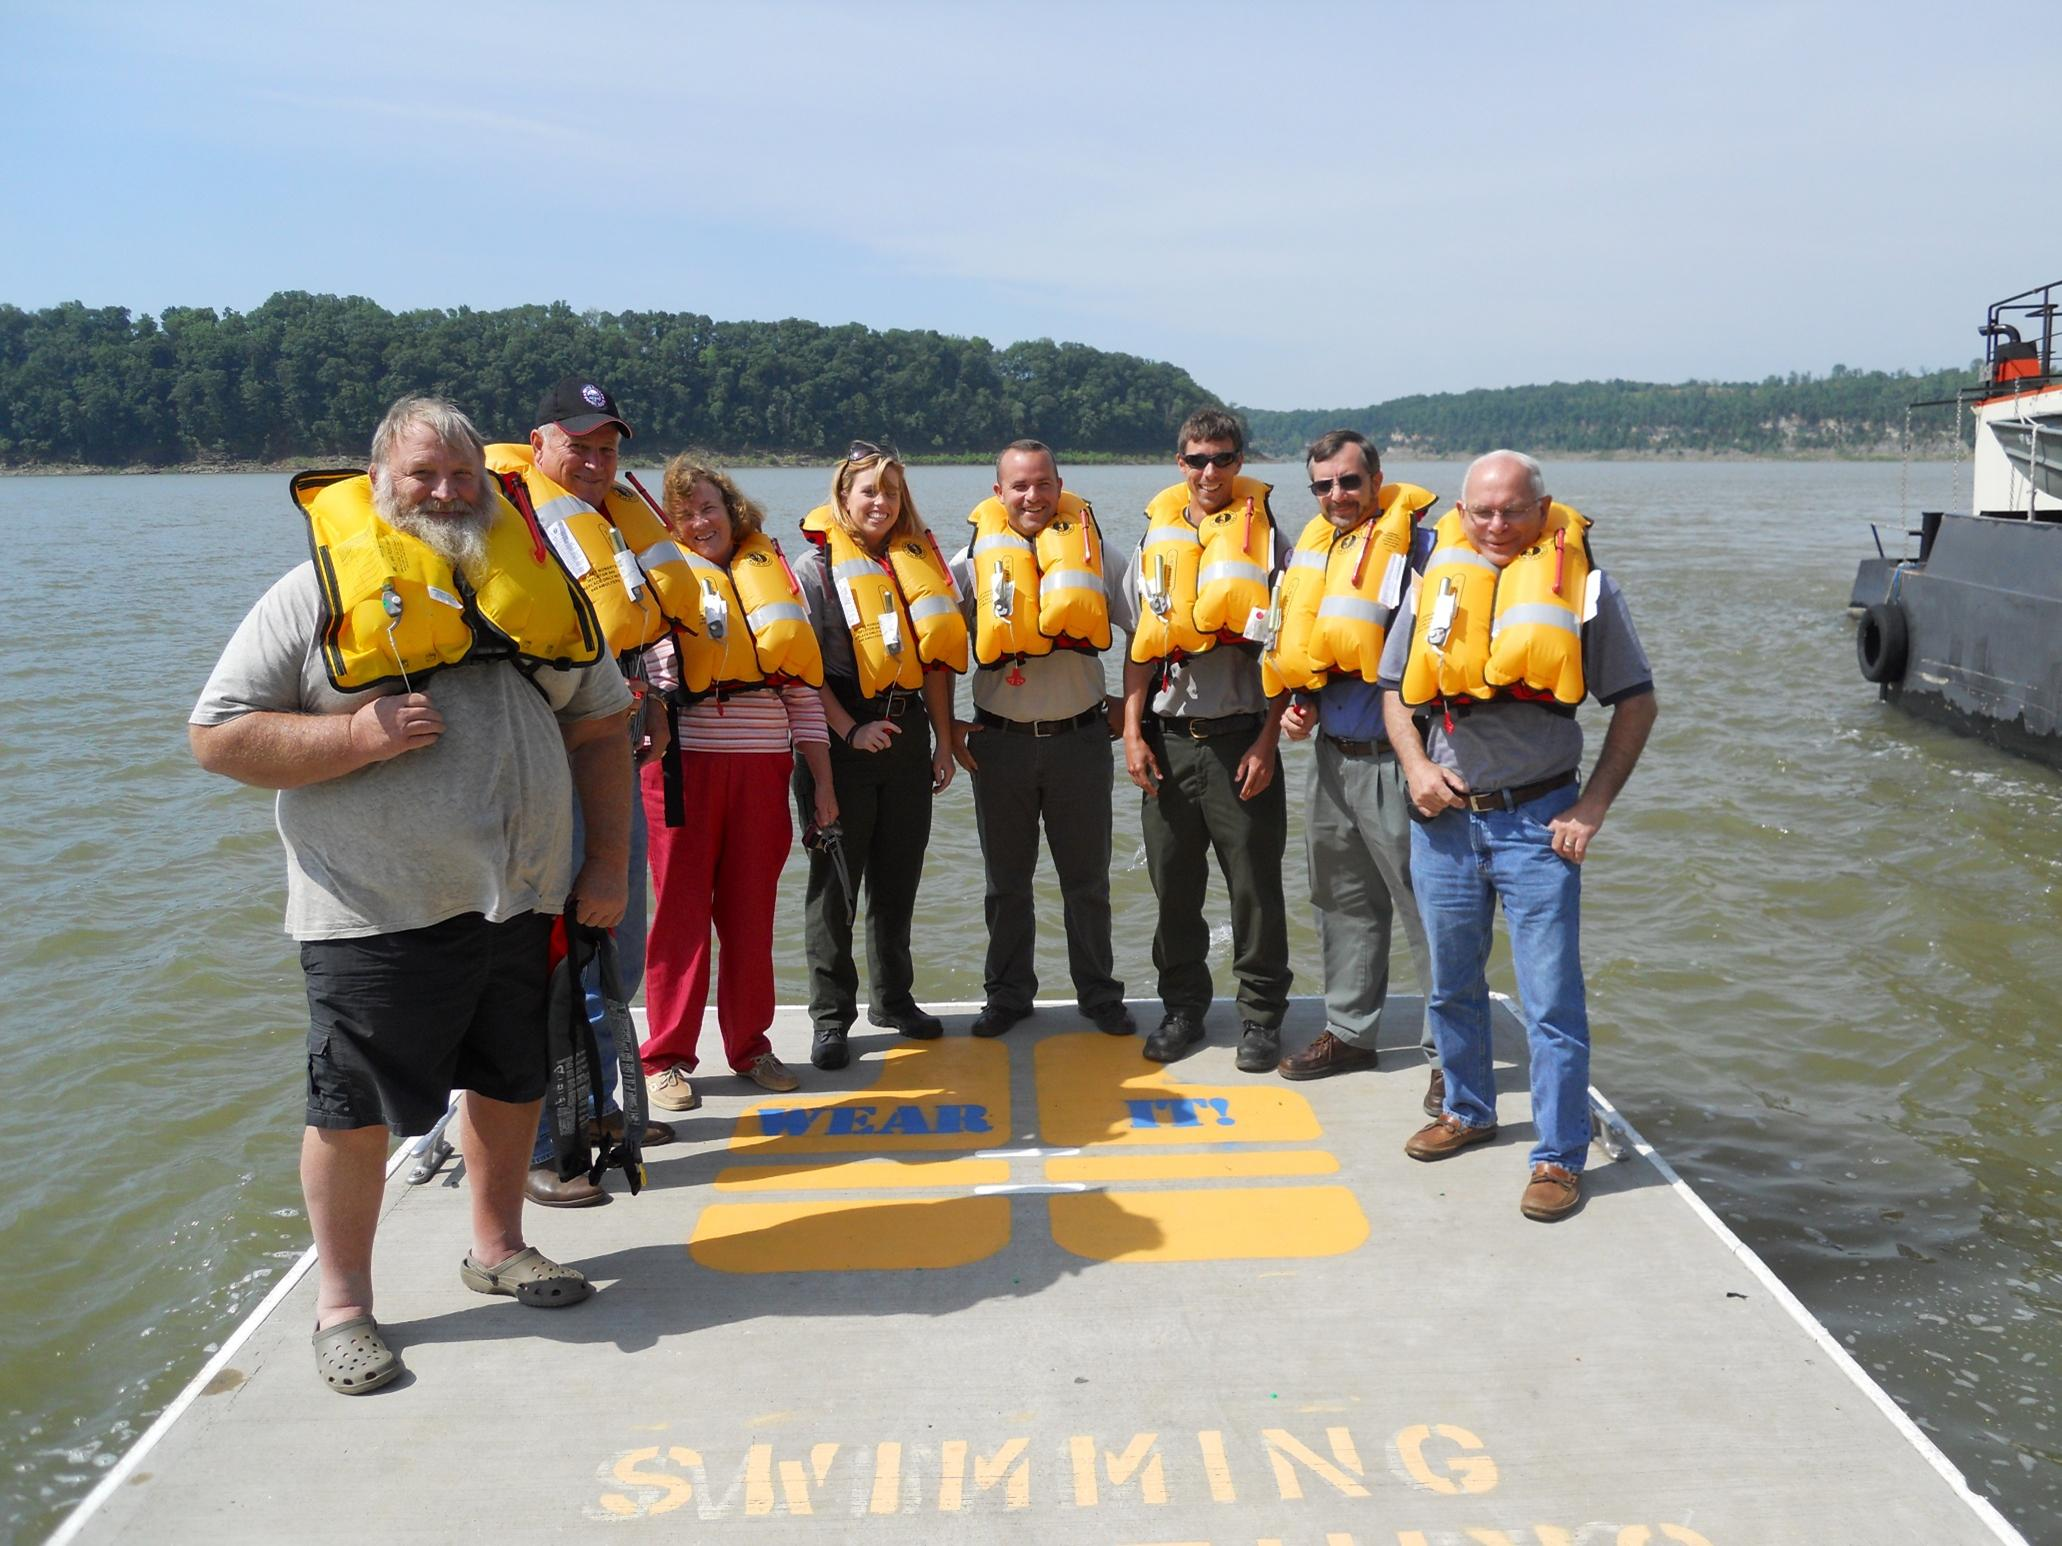 Rangers and Visitors show off inflatable life jackets during the Ready, Set, Inflate Event at Lake Cumberland